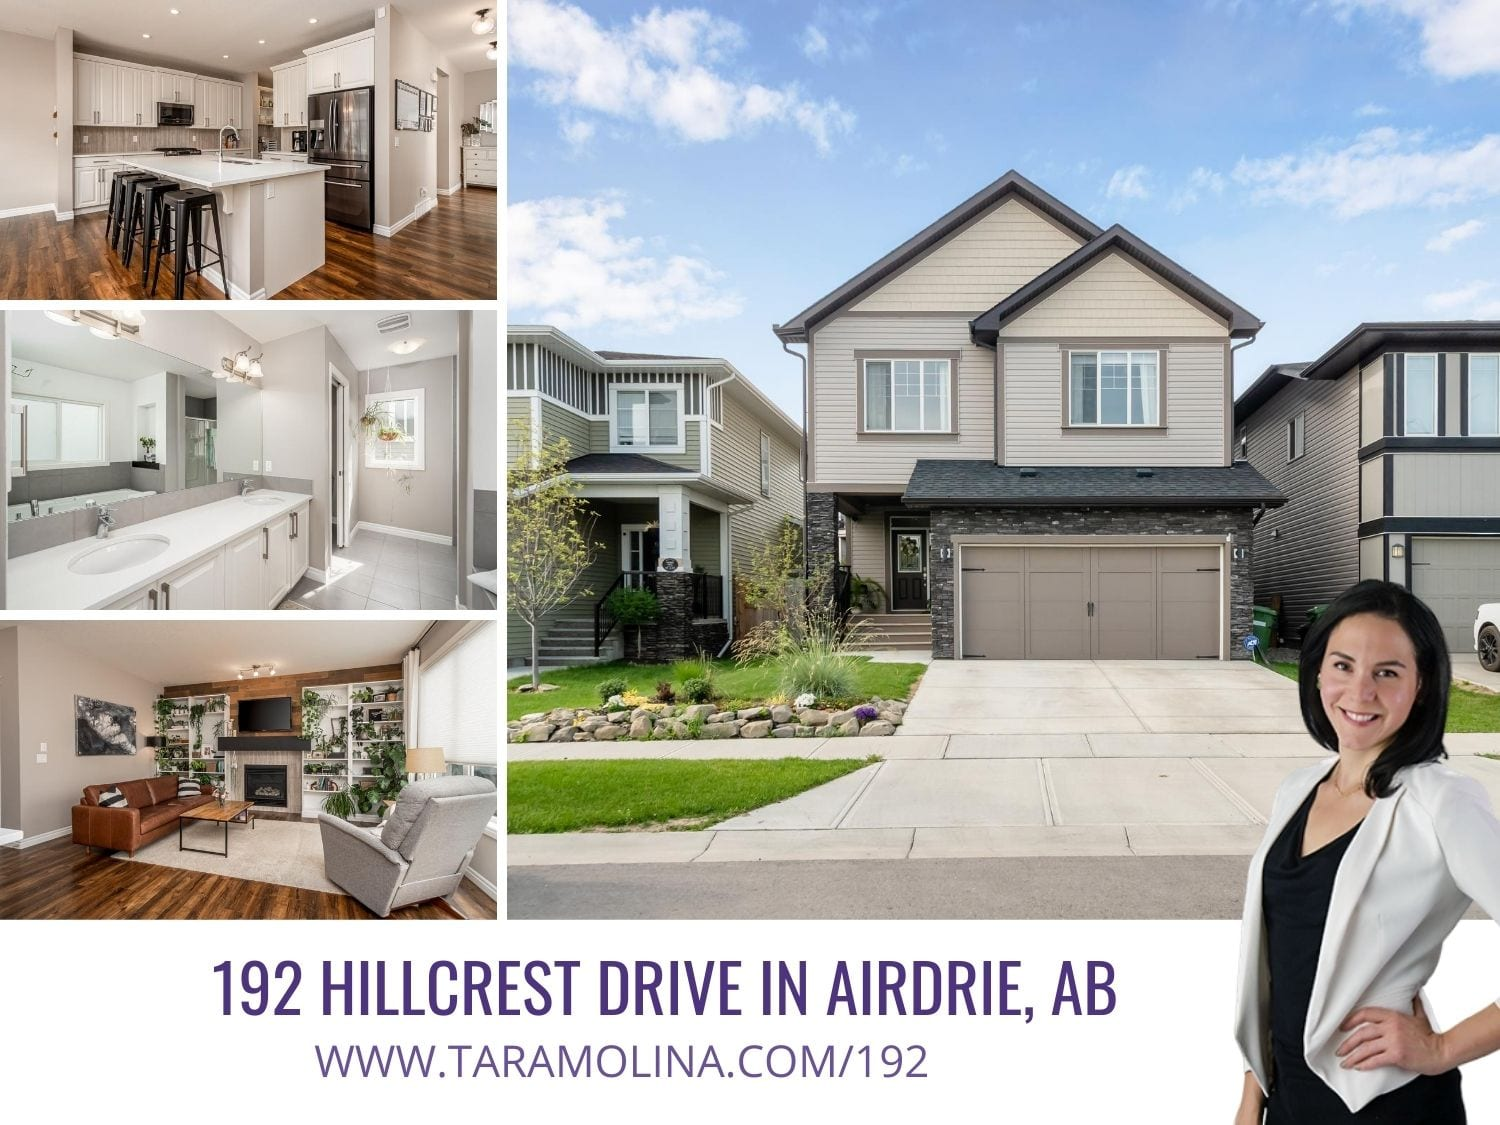 192 Hillcrest Drive in Airdrie